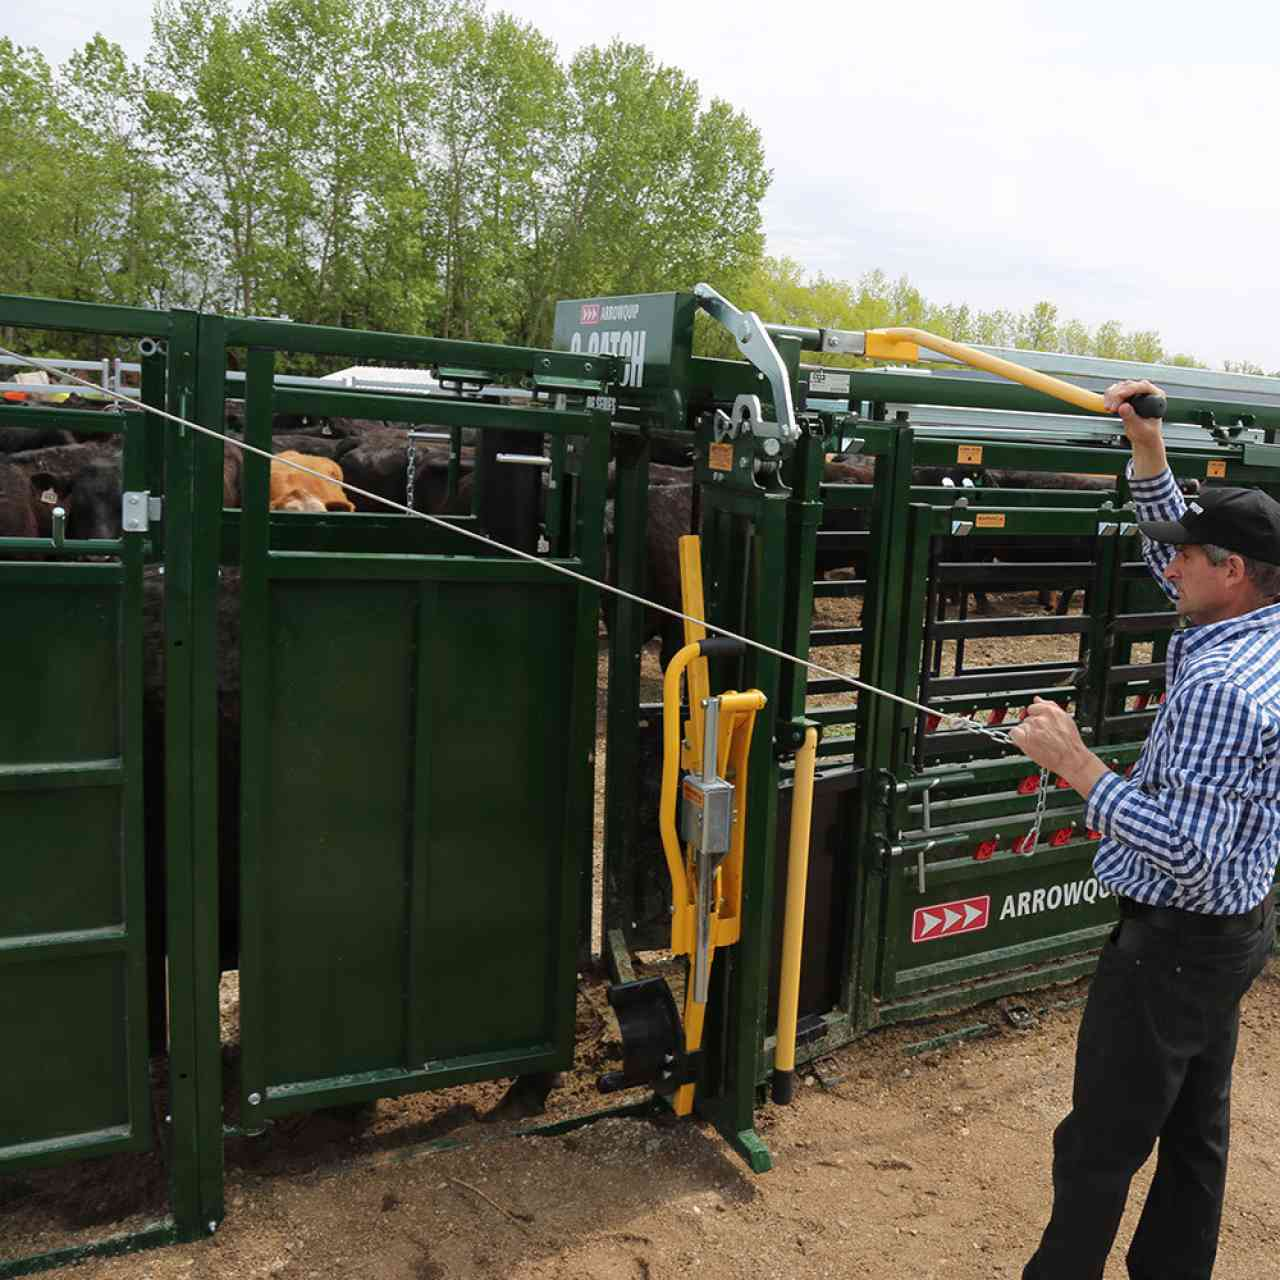 Cattle sorting and drafting gate image from the front